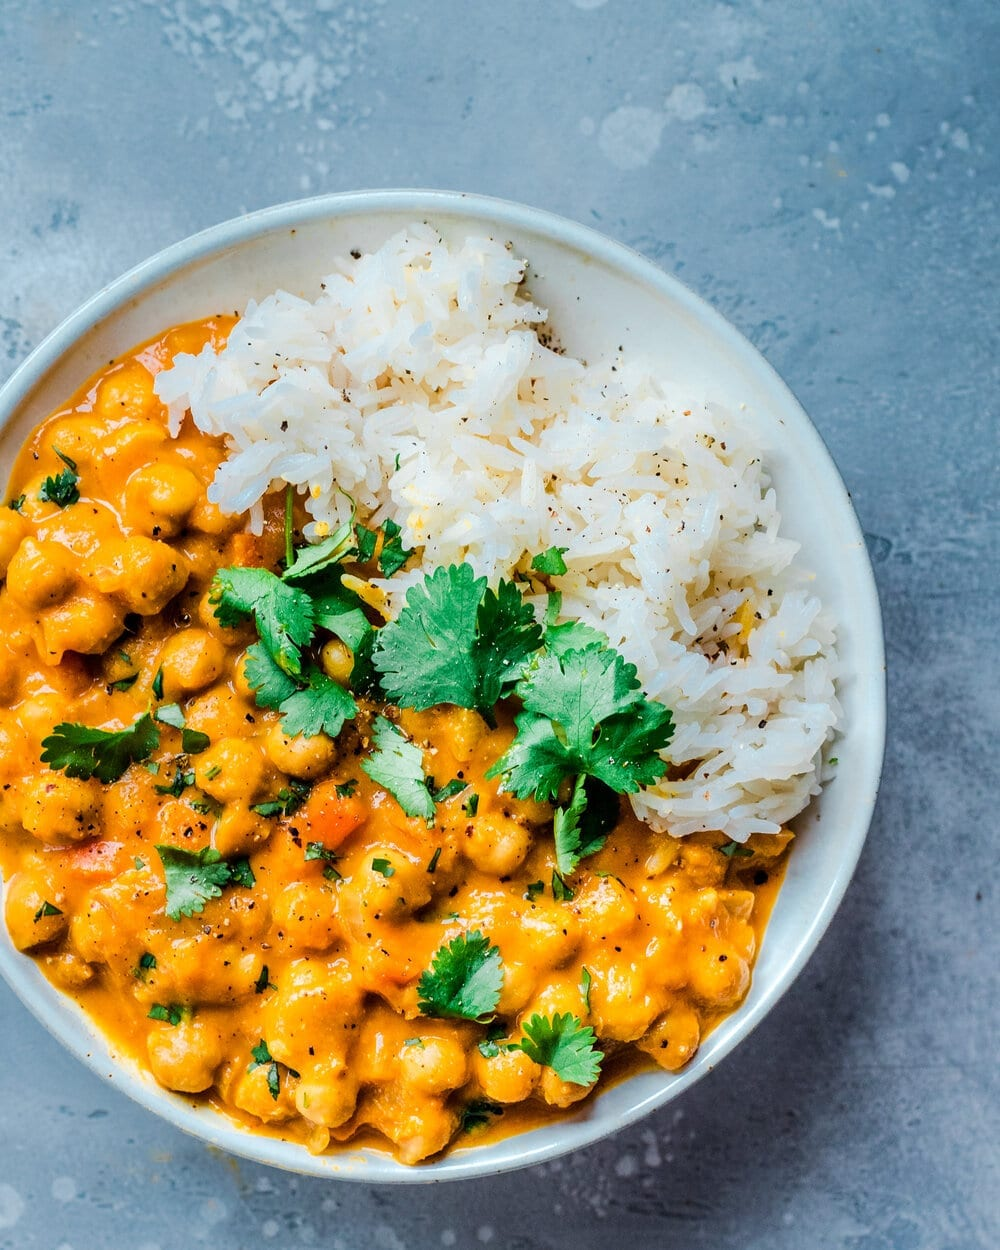 Vegan Thai Kabocha Squash Curry